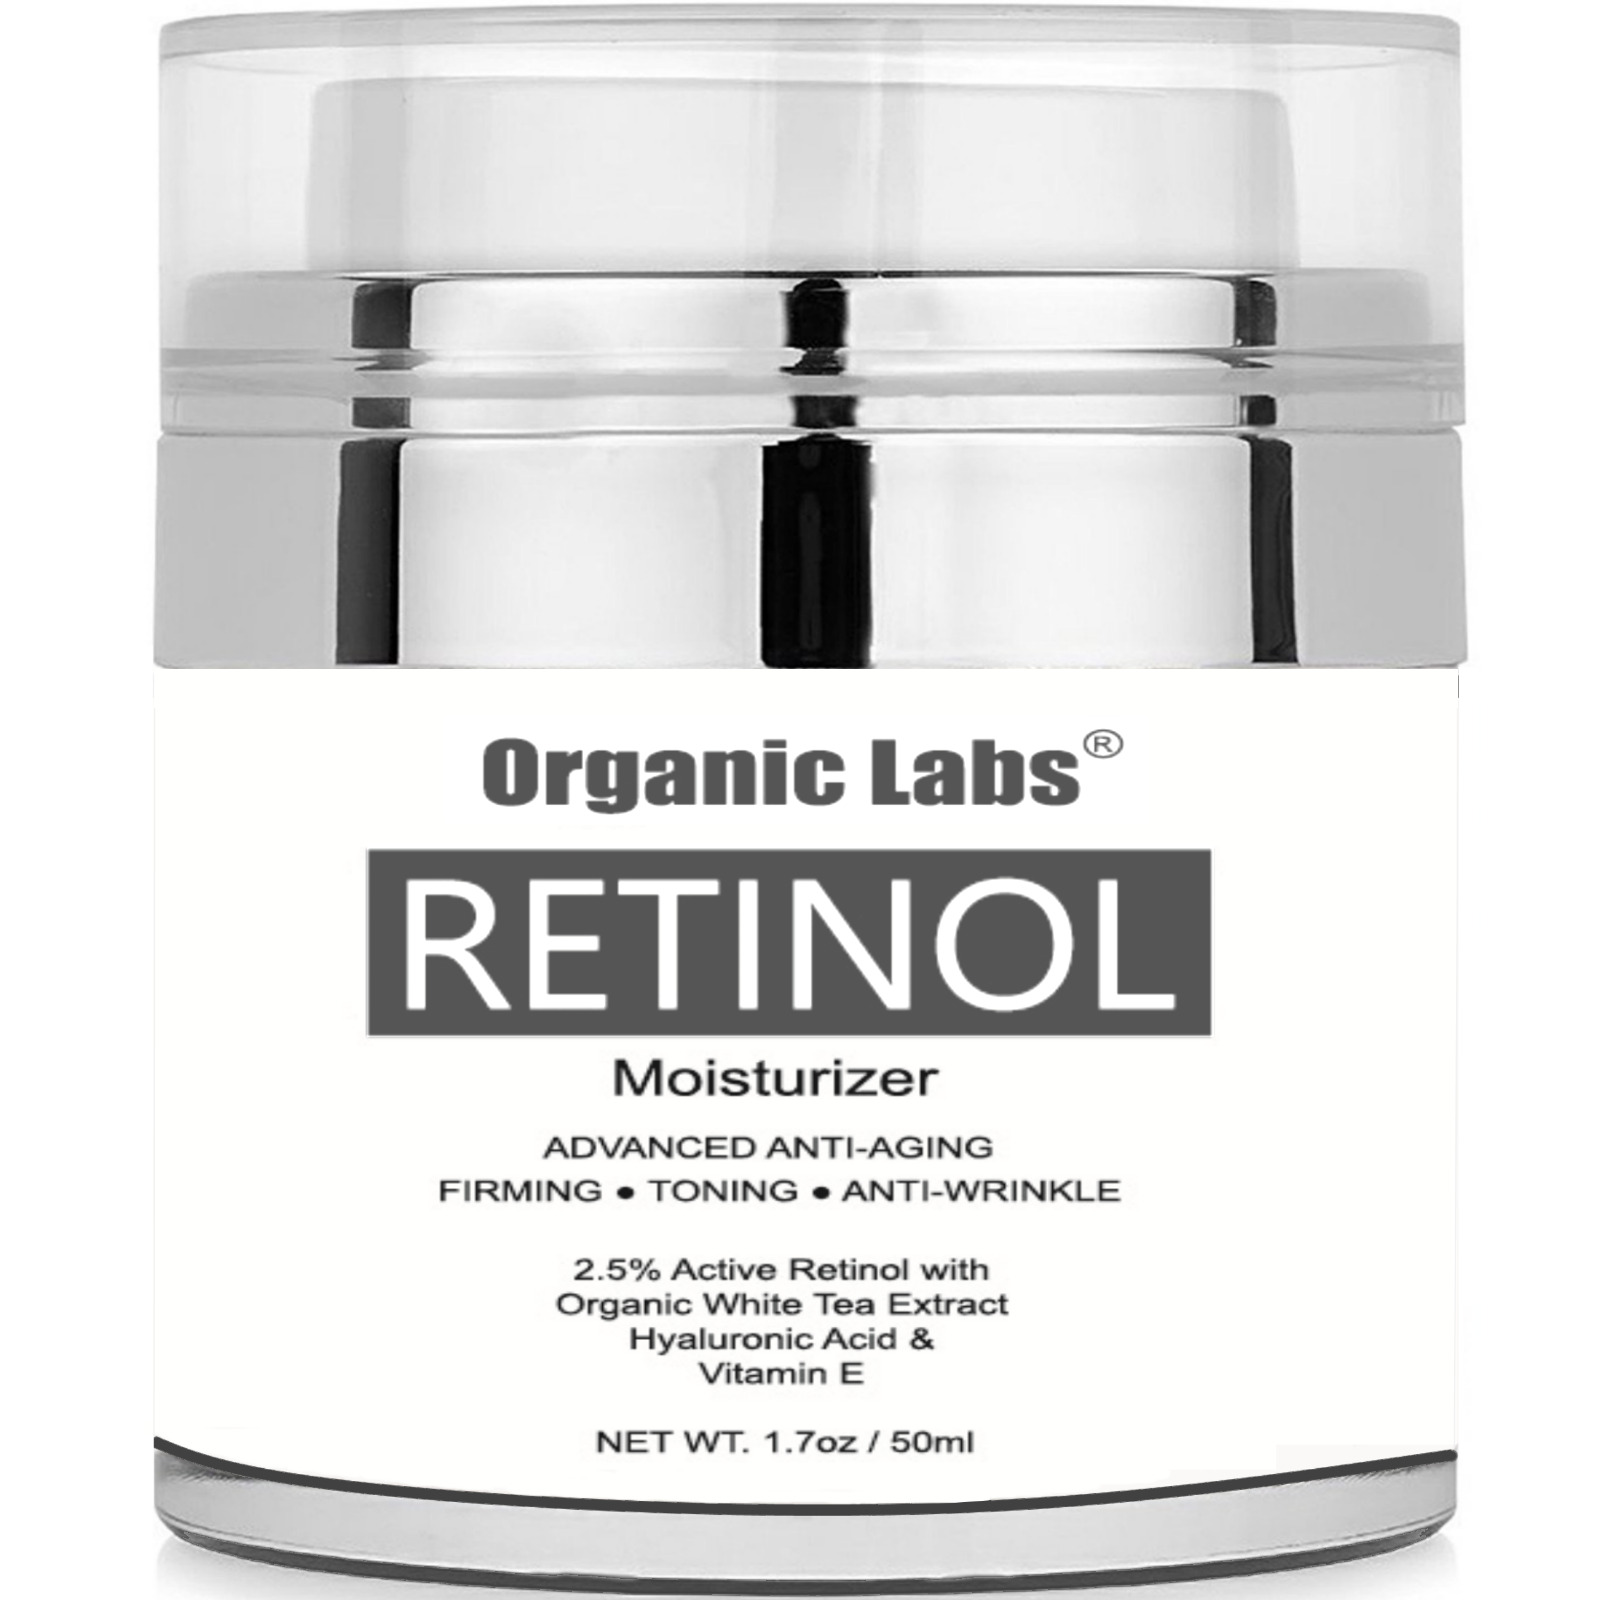 Retinol Moisturizer Face And Eye Gel Best Day Night Cream Vitamin E Hyaluronic Acid Facial Serum Oil Skin Care Anti Aging Moisturizing 1 Of 3free Shipping